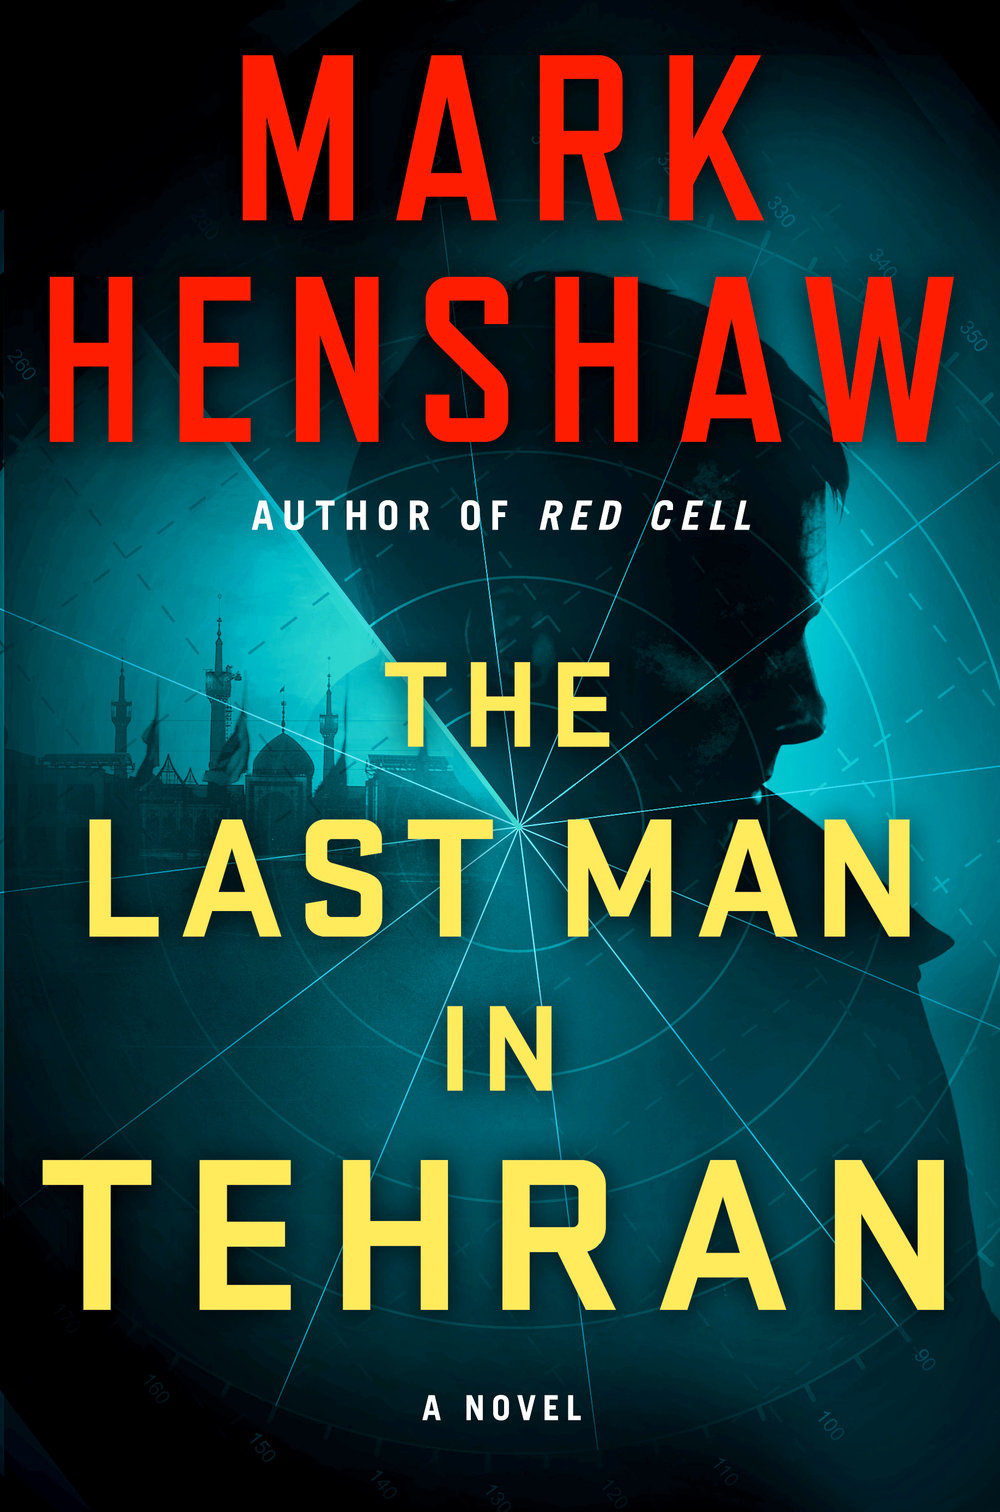 Click  here  to order  The Last Man in Tehran  on Amazon.